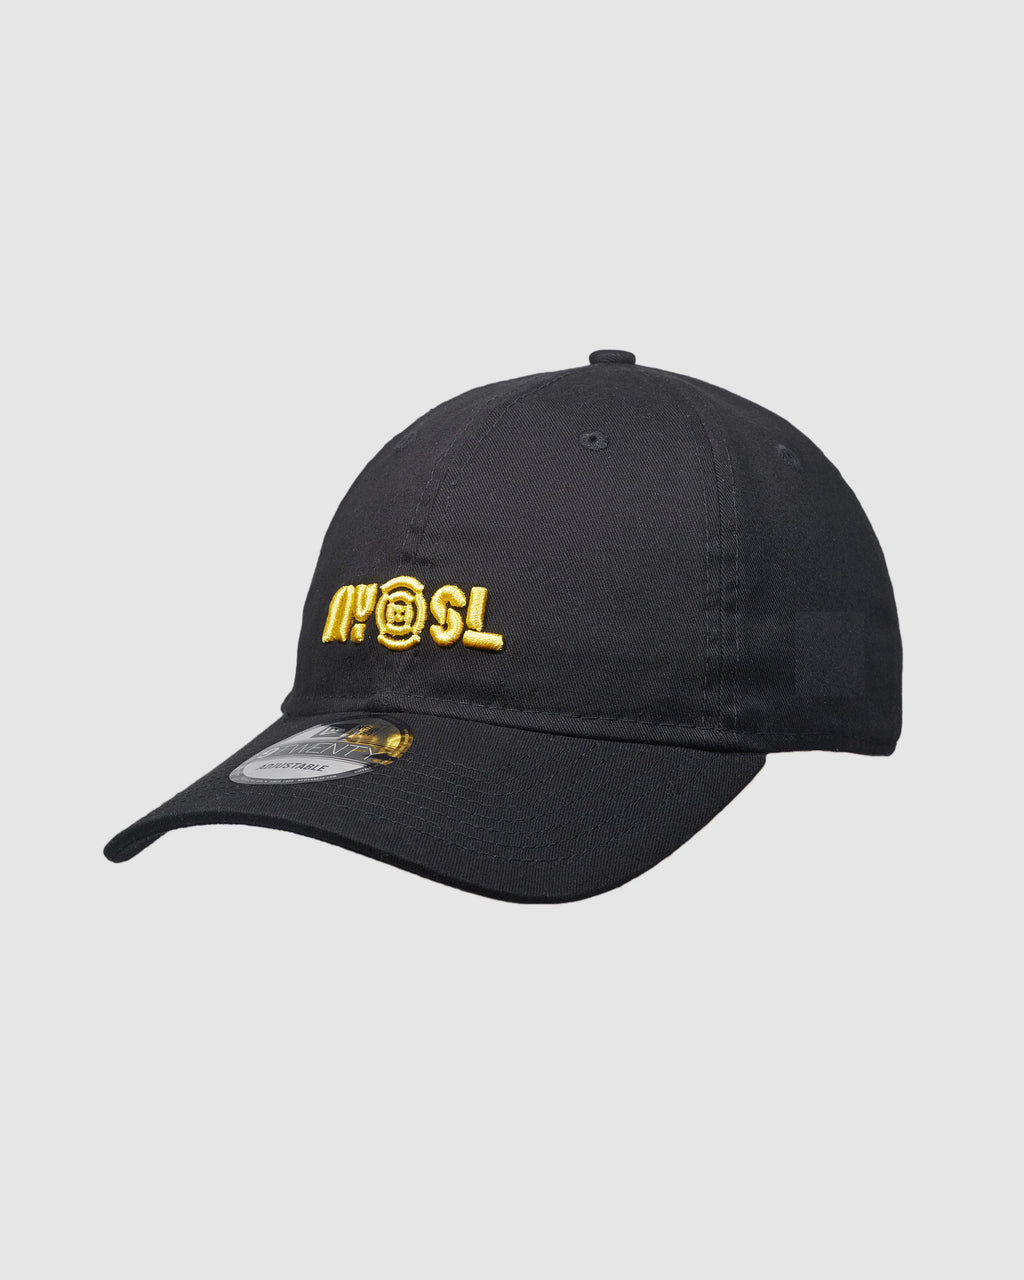 NYSL New Era Dad Hat